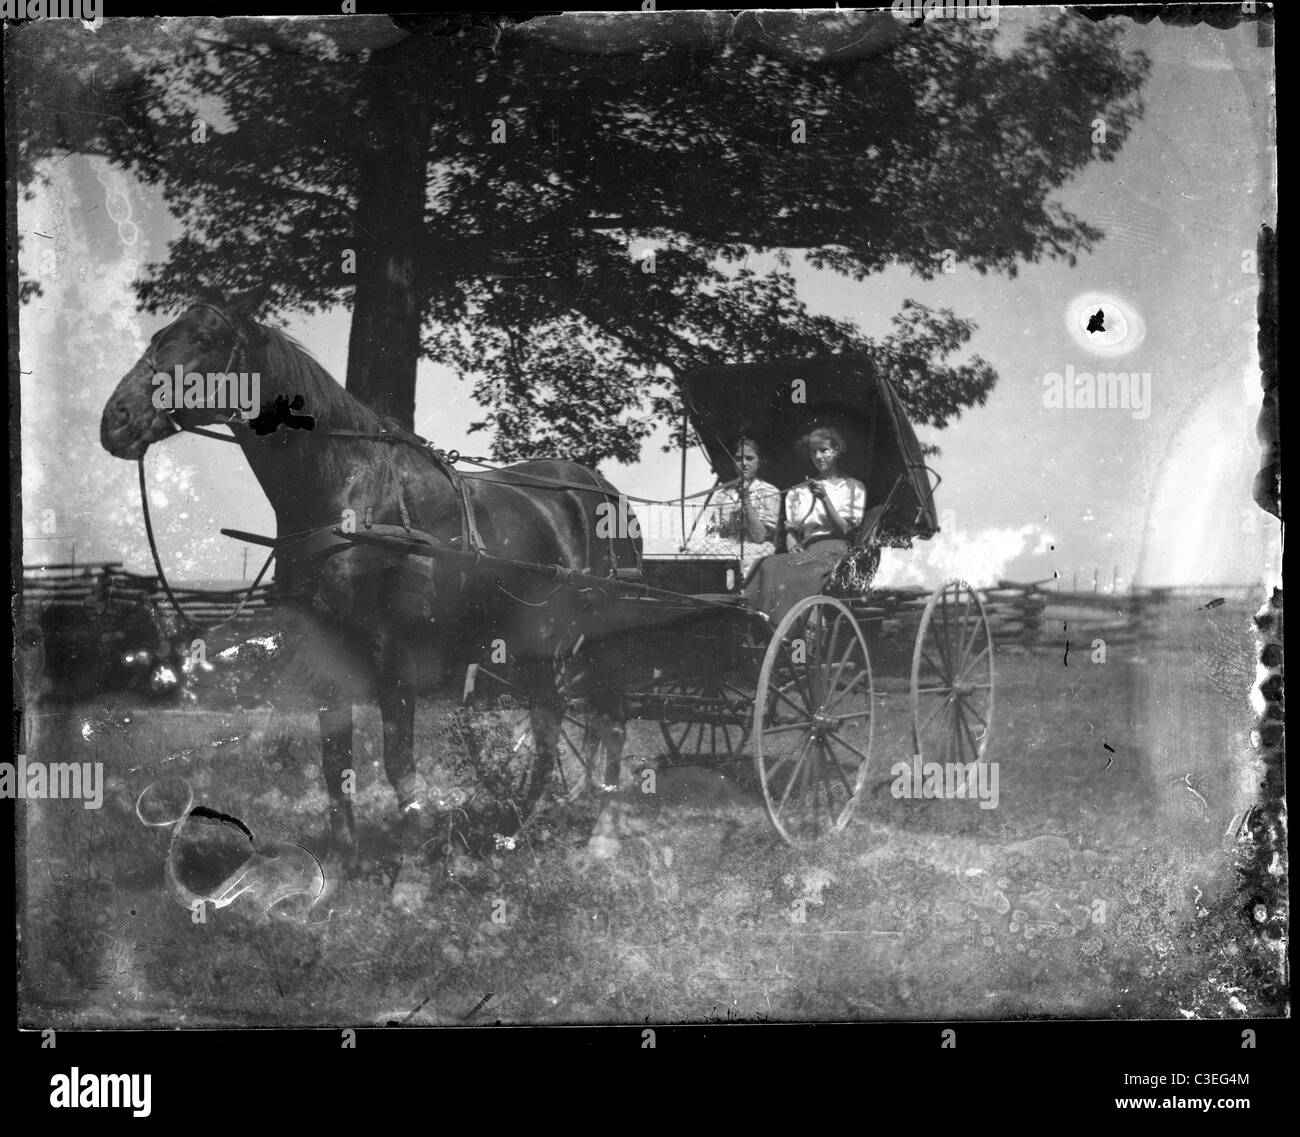 two women sitting in a horse and buggy dirt street road house transportation 19th century 1890s - Stock Image